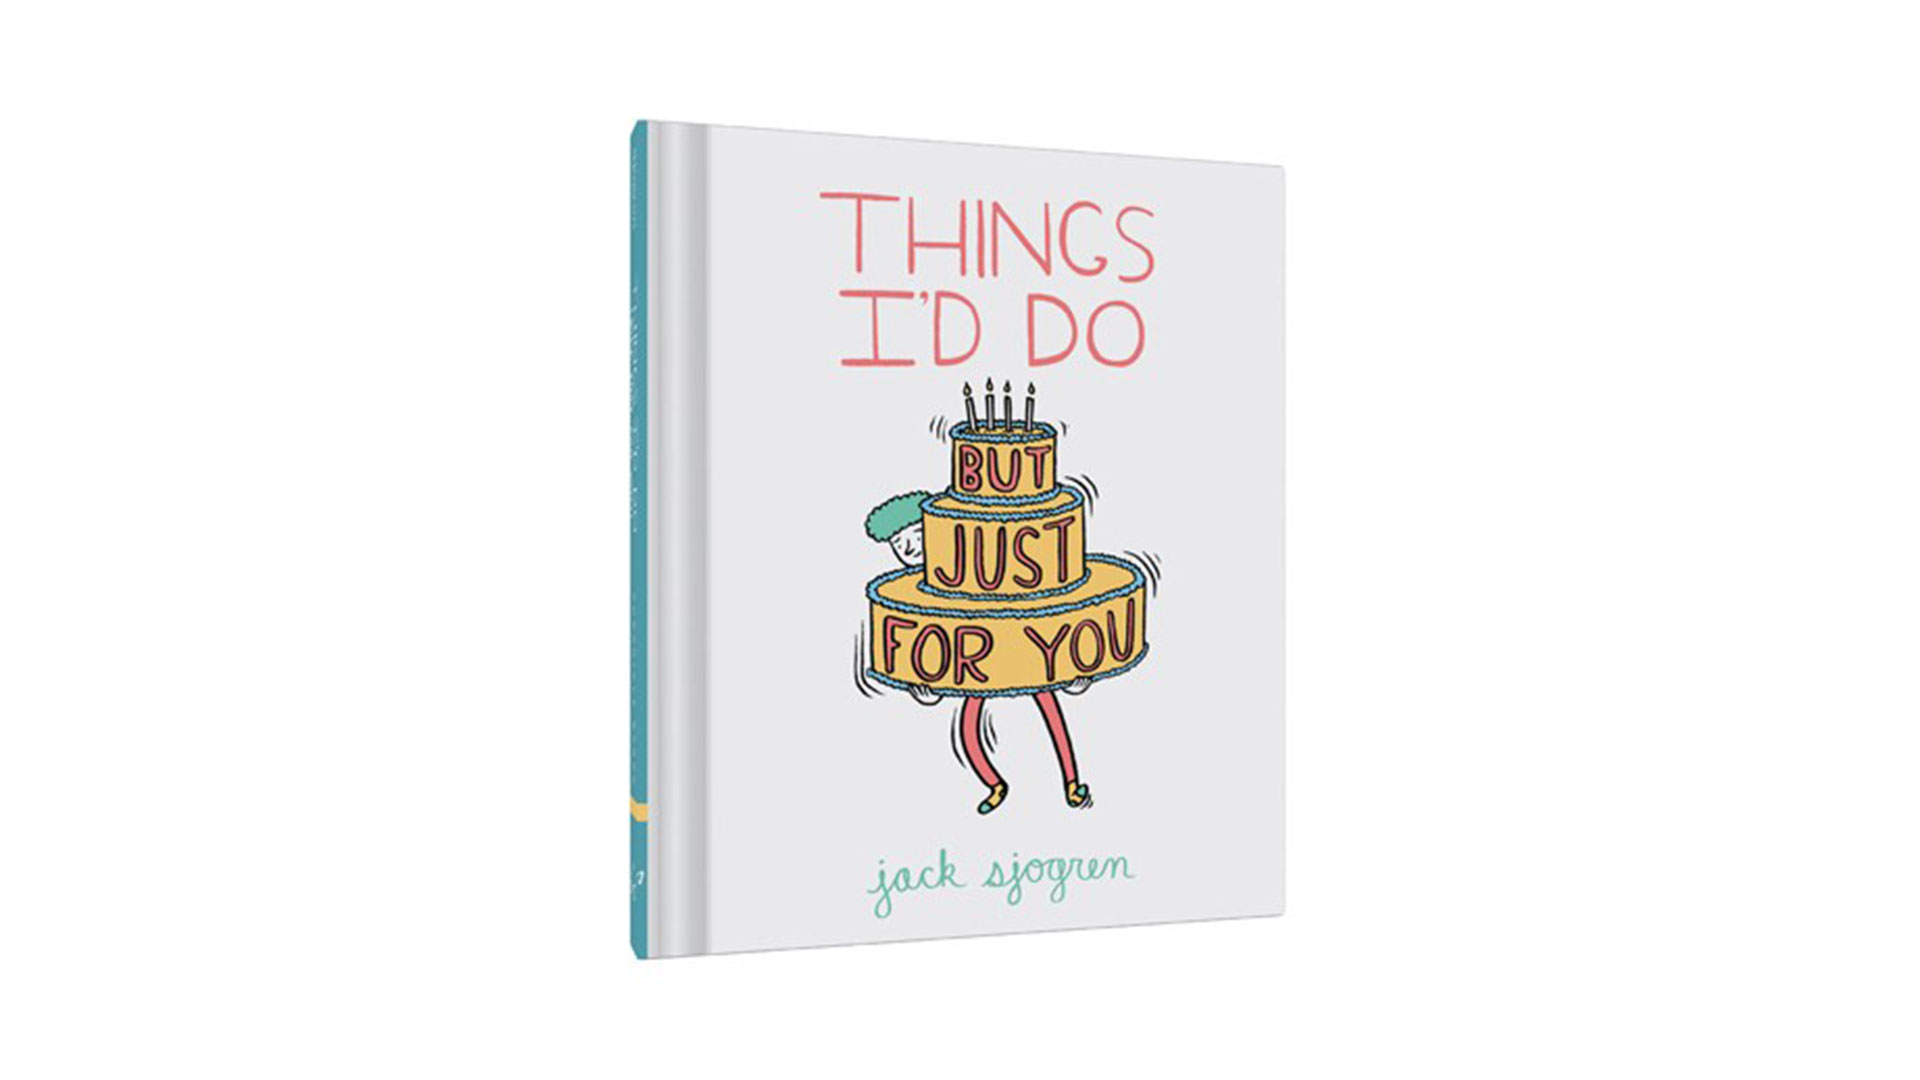 Things I'd Do (But Just For You) Book